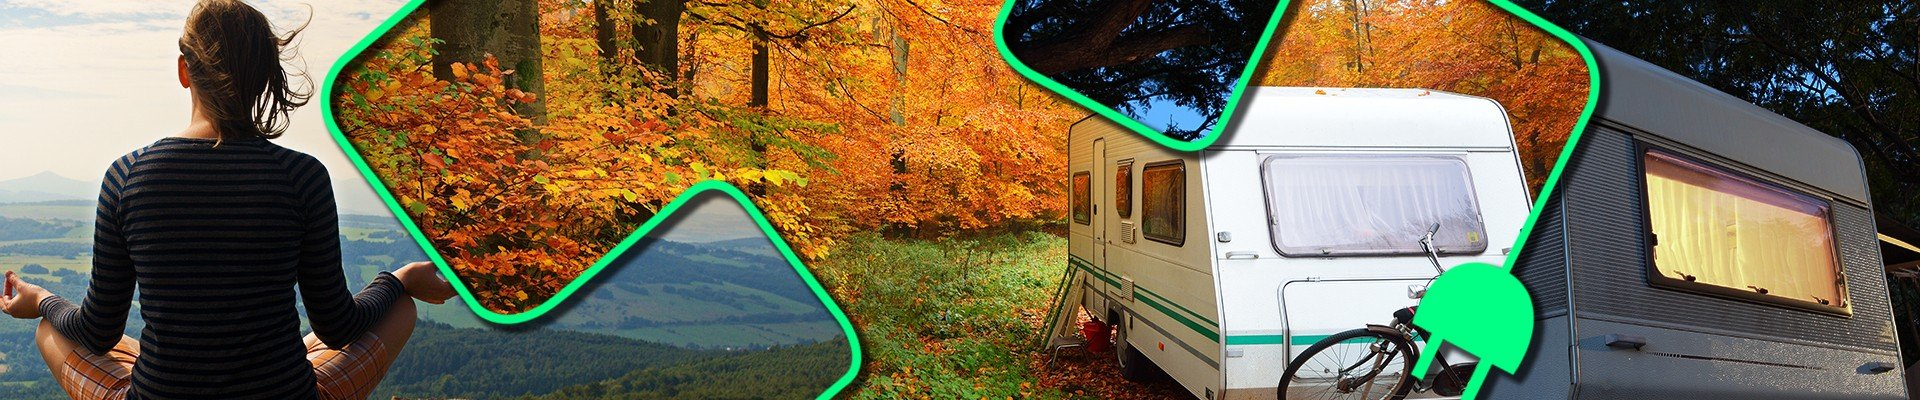 woman meditating - small travel trailer in autumn - travel trailer at night